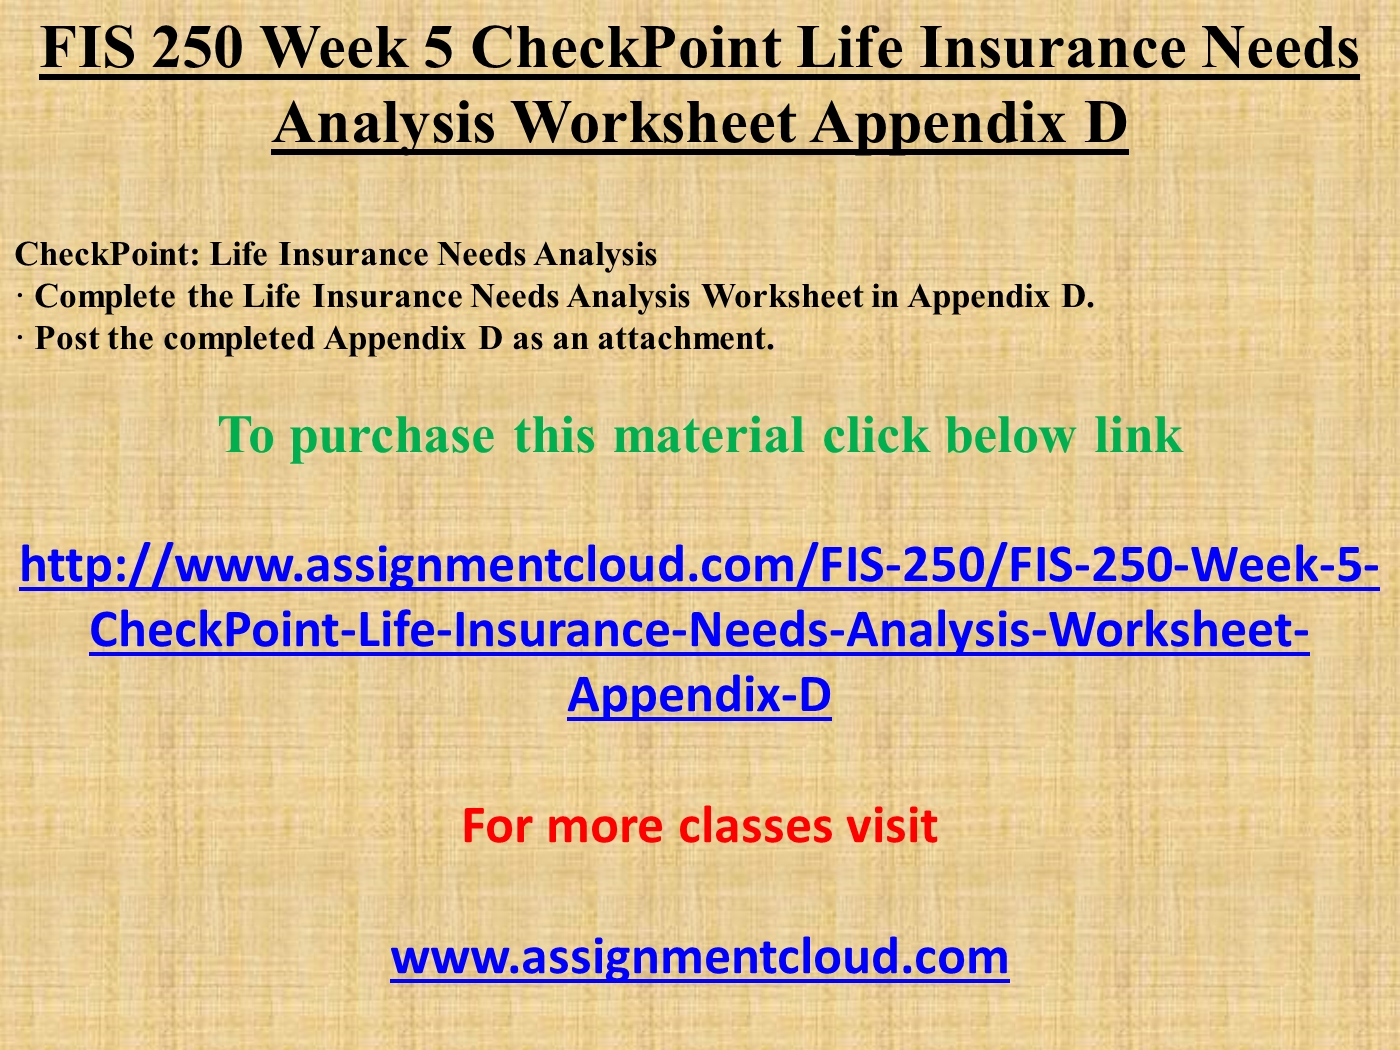 worksheet Life Insurance Needs Worksheet fis 250 week 5 checkpoint life insurance needs analysis worksheet appendix d powerpoint presentation ppt